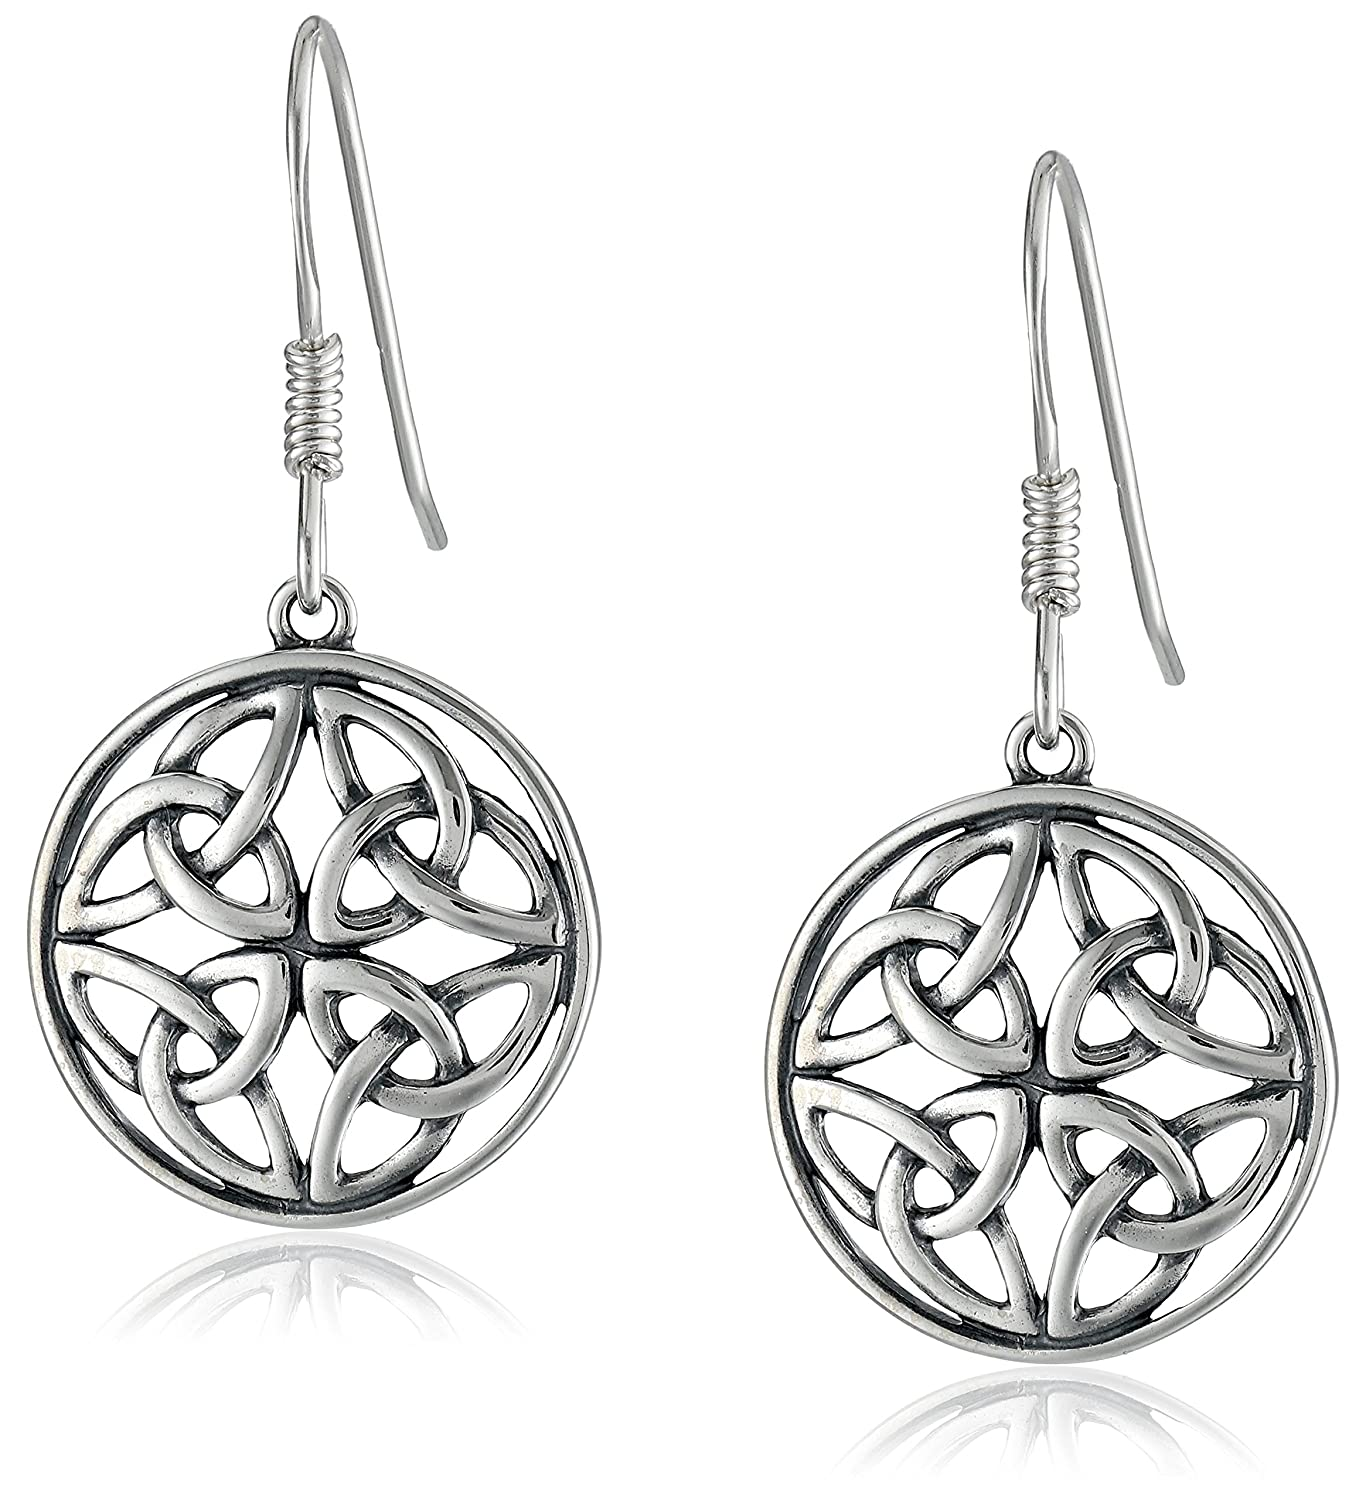 earrings by knot product angela evans jewellery notonthehighstreet celtic angelaevansjewellery original com